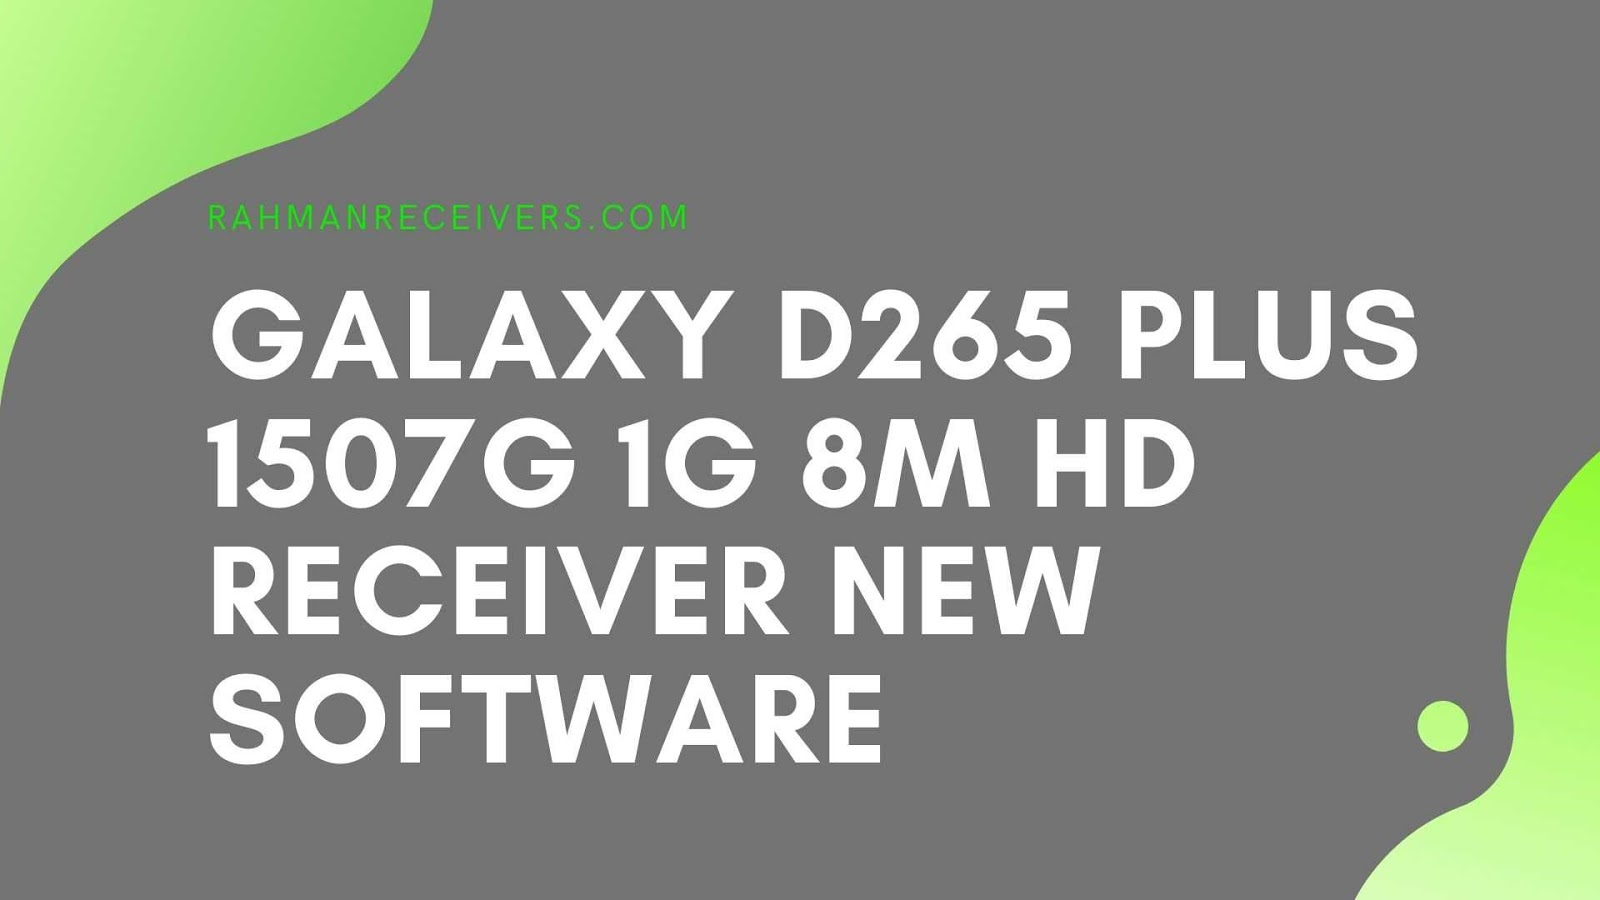 GALAXY D265 PLUS 1507G 1G 8M HD RECEIVER NEW SOFTWARE 07 APRIL 2020